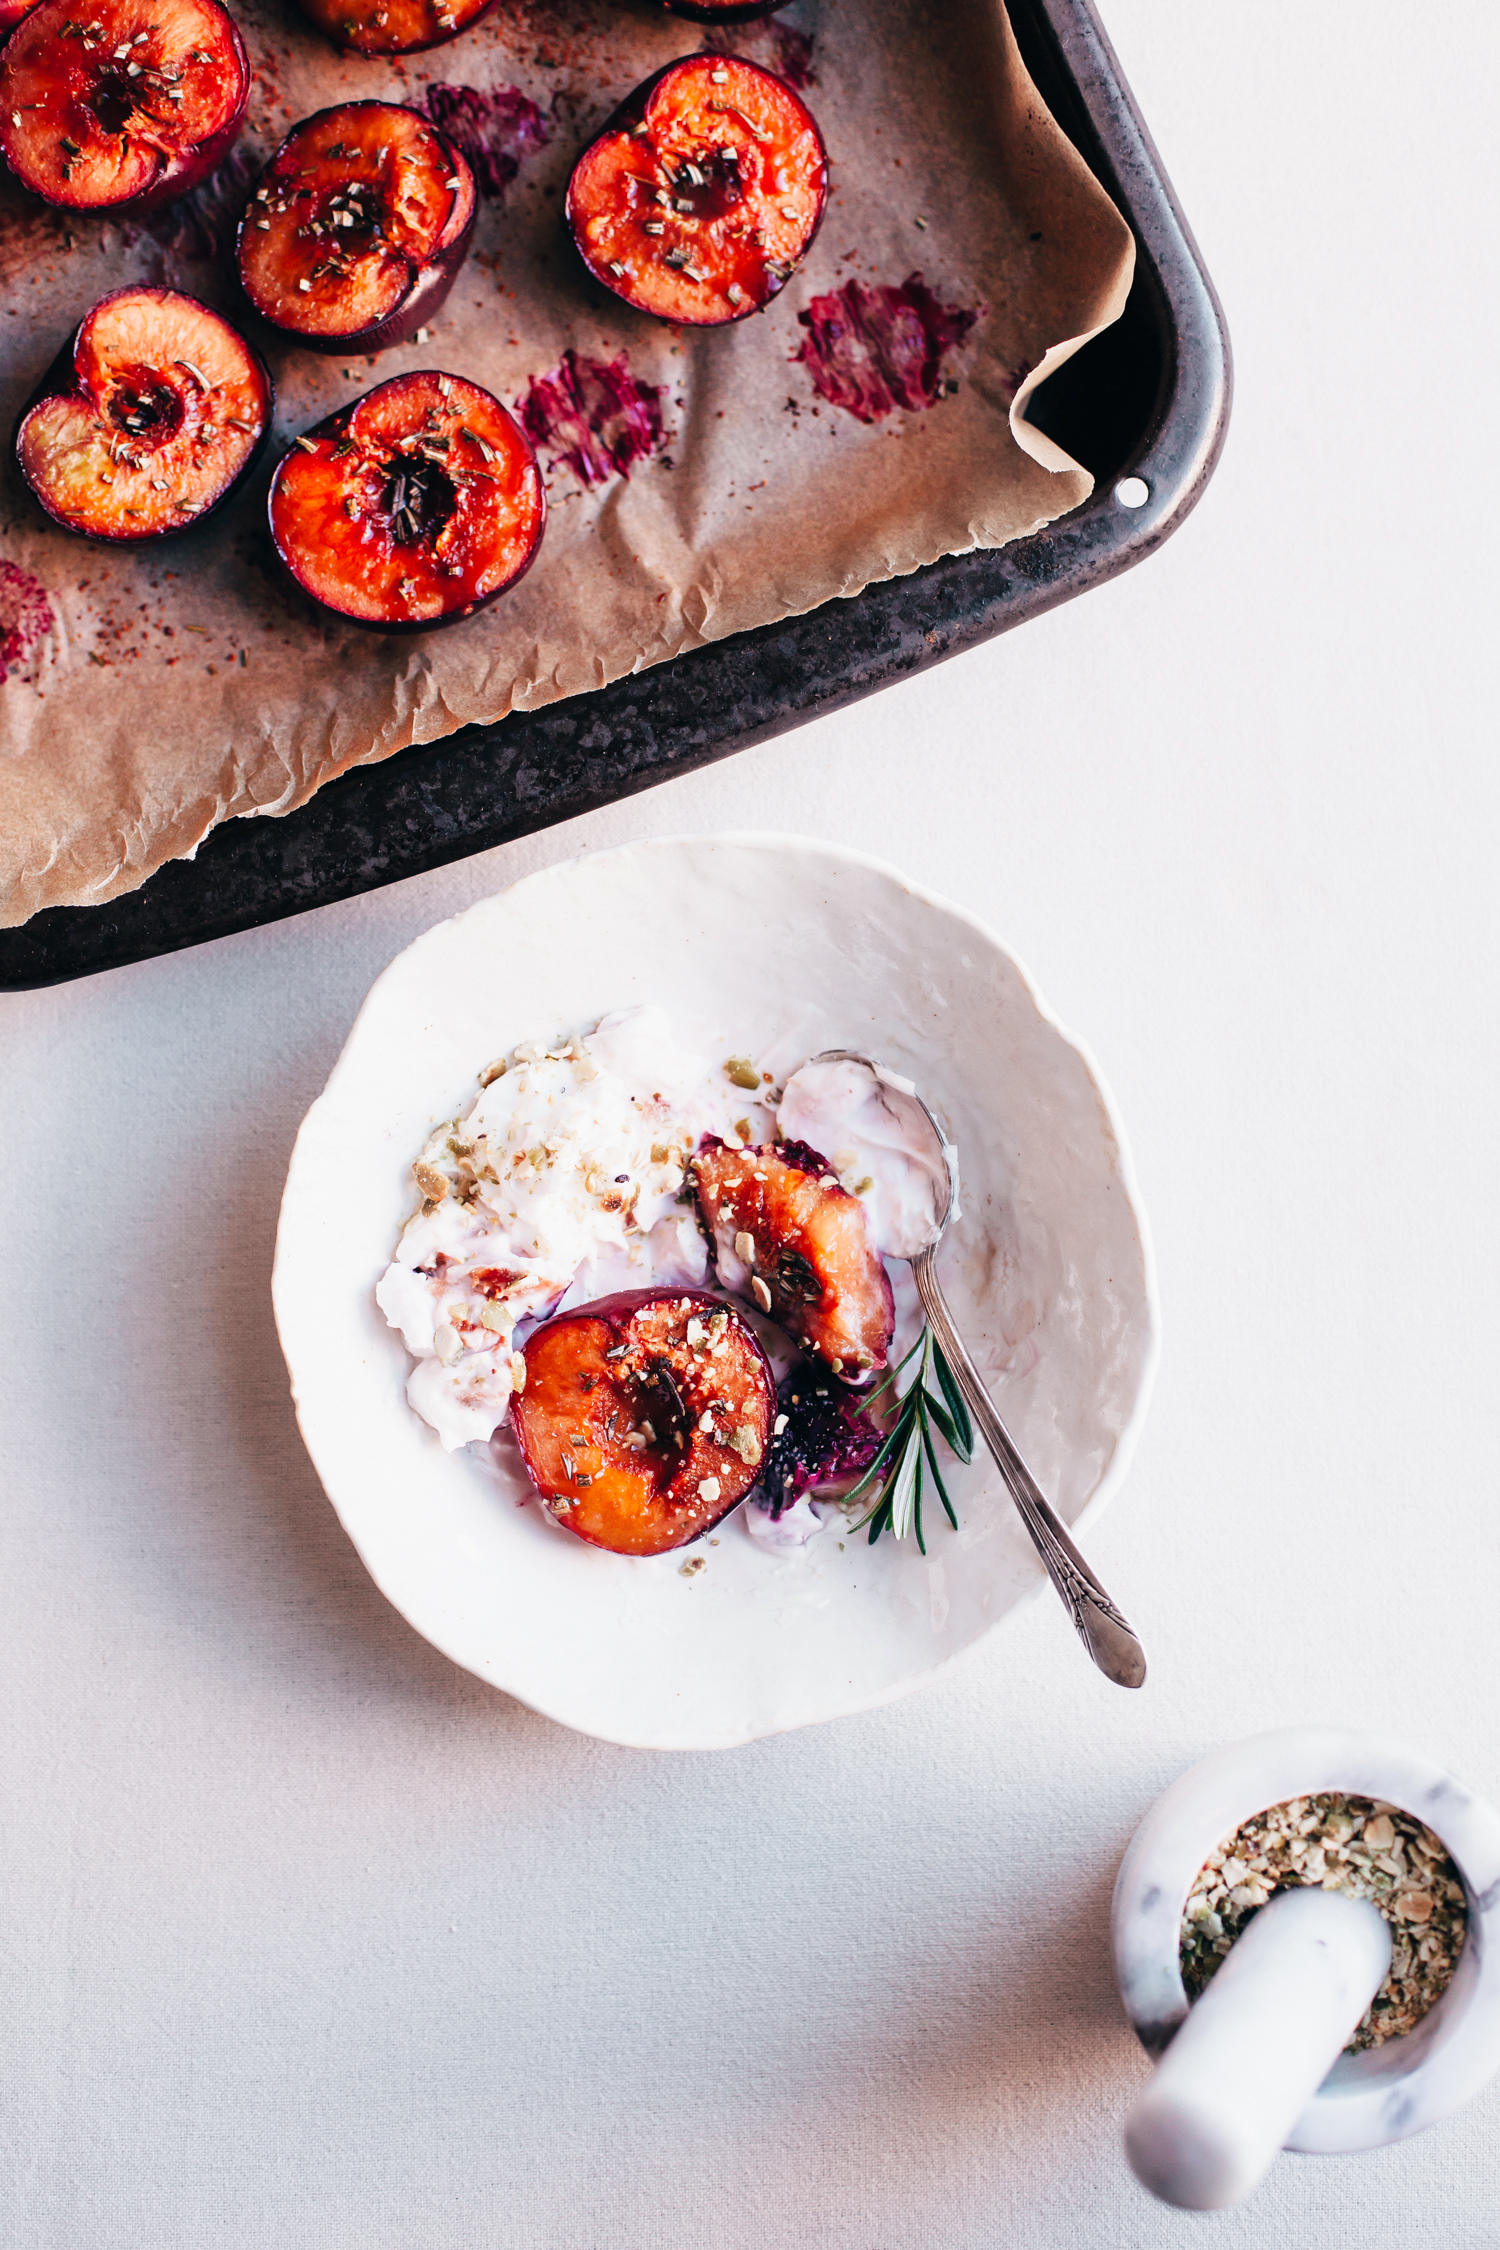 Rosemary-Roasted Plums with a Cardamom Sprinkle (Plant-Based Fall Meal Plan, Part 2) - Golubka Kitchen